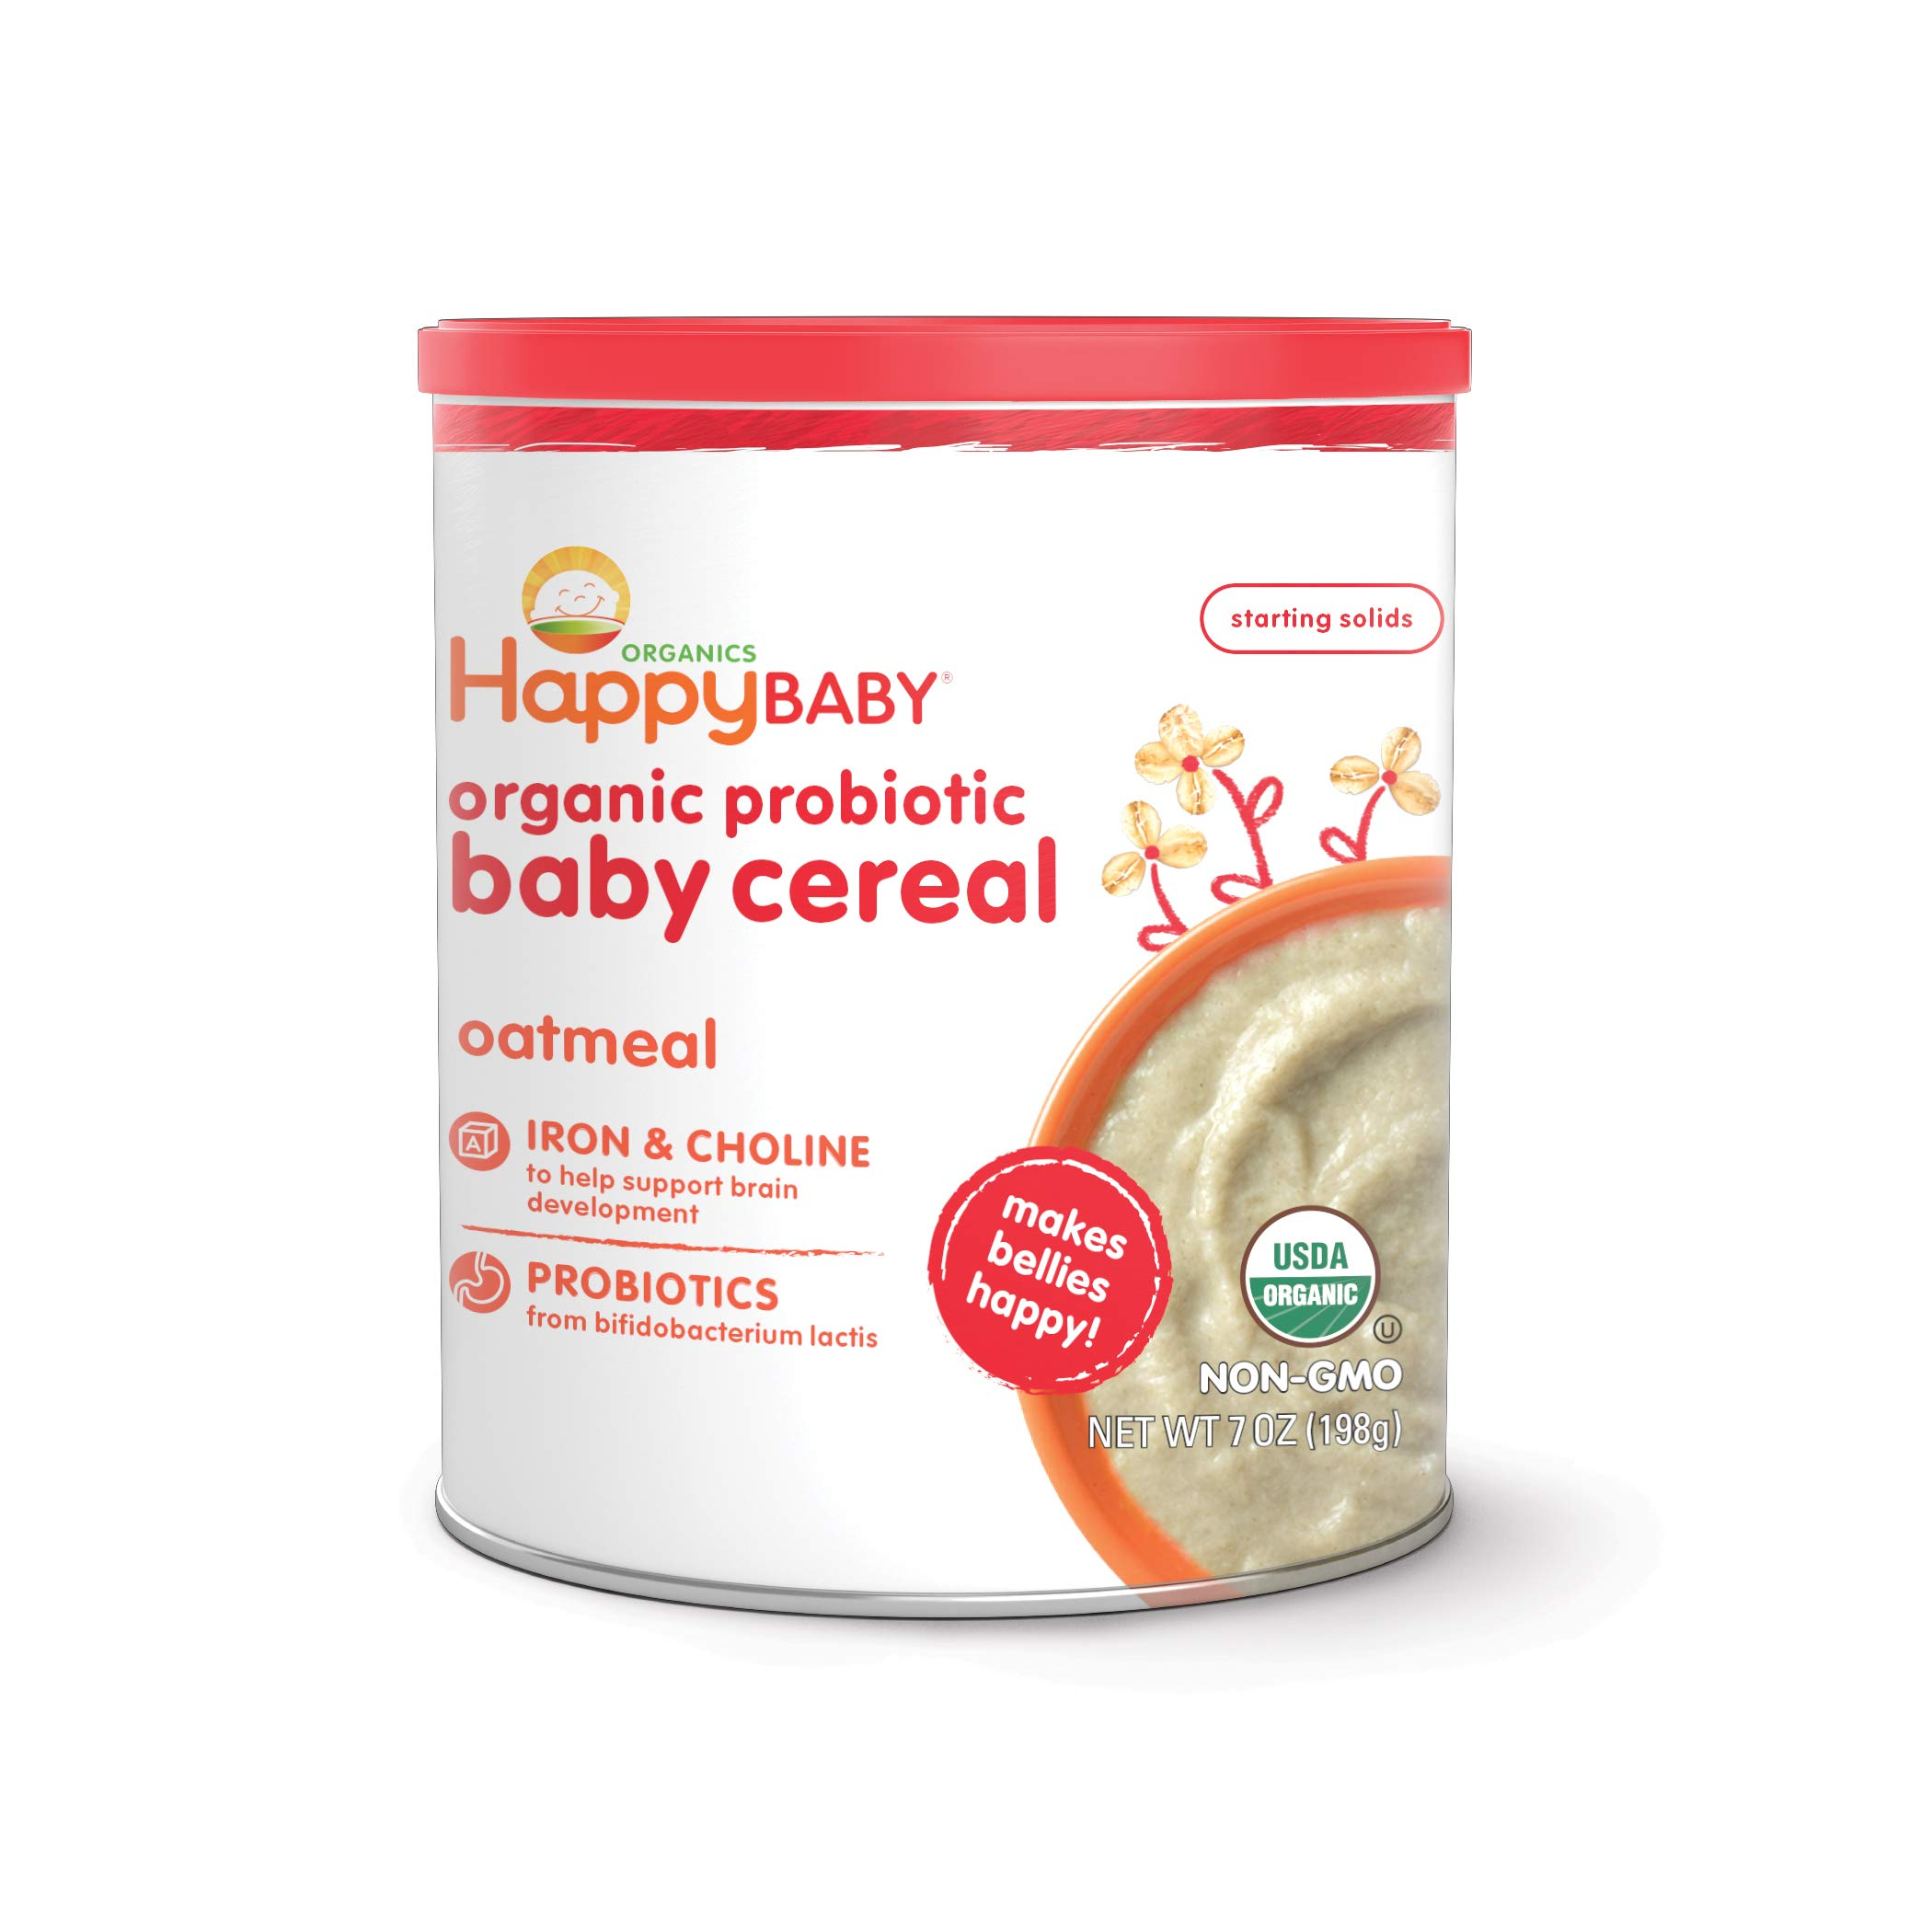 Happy Baby Organic Probiotic Baby Cereal with Choline Oatmeal, 7 Ounce Canister (Pack of 6) Organic Baby Cereal with Iron & Choline to Support Baby's Brain Development (Packaging may vary) by Happy Baby